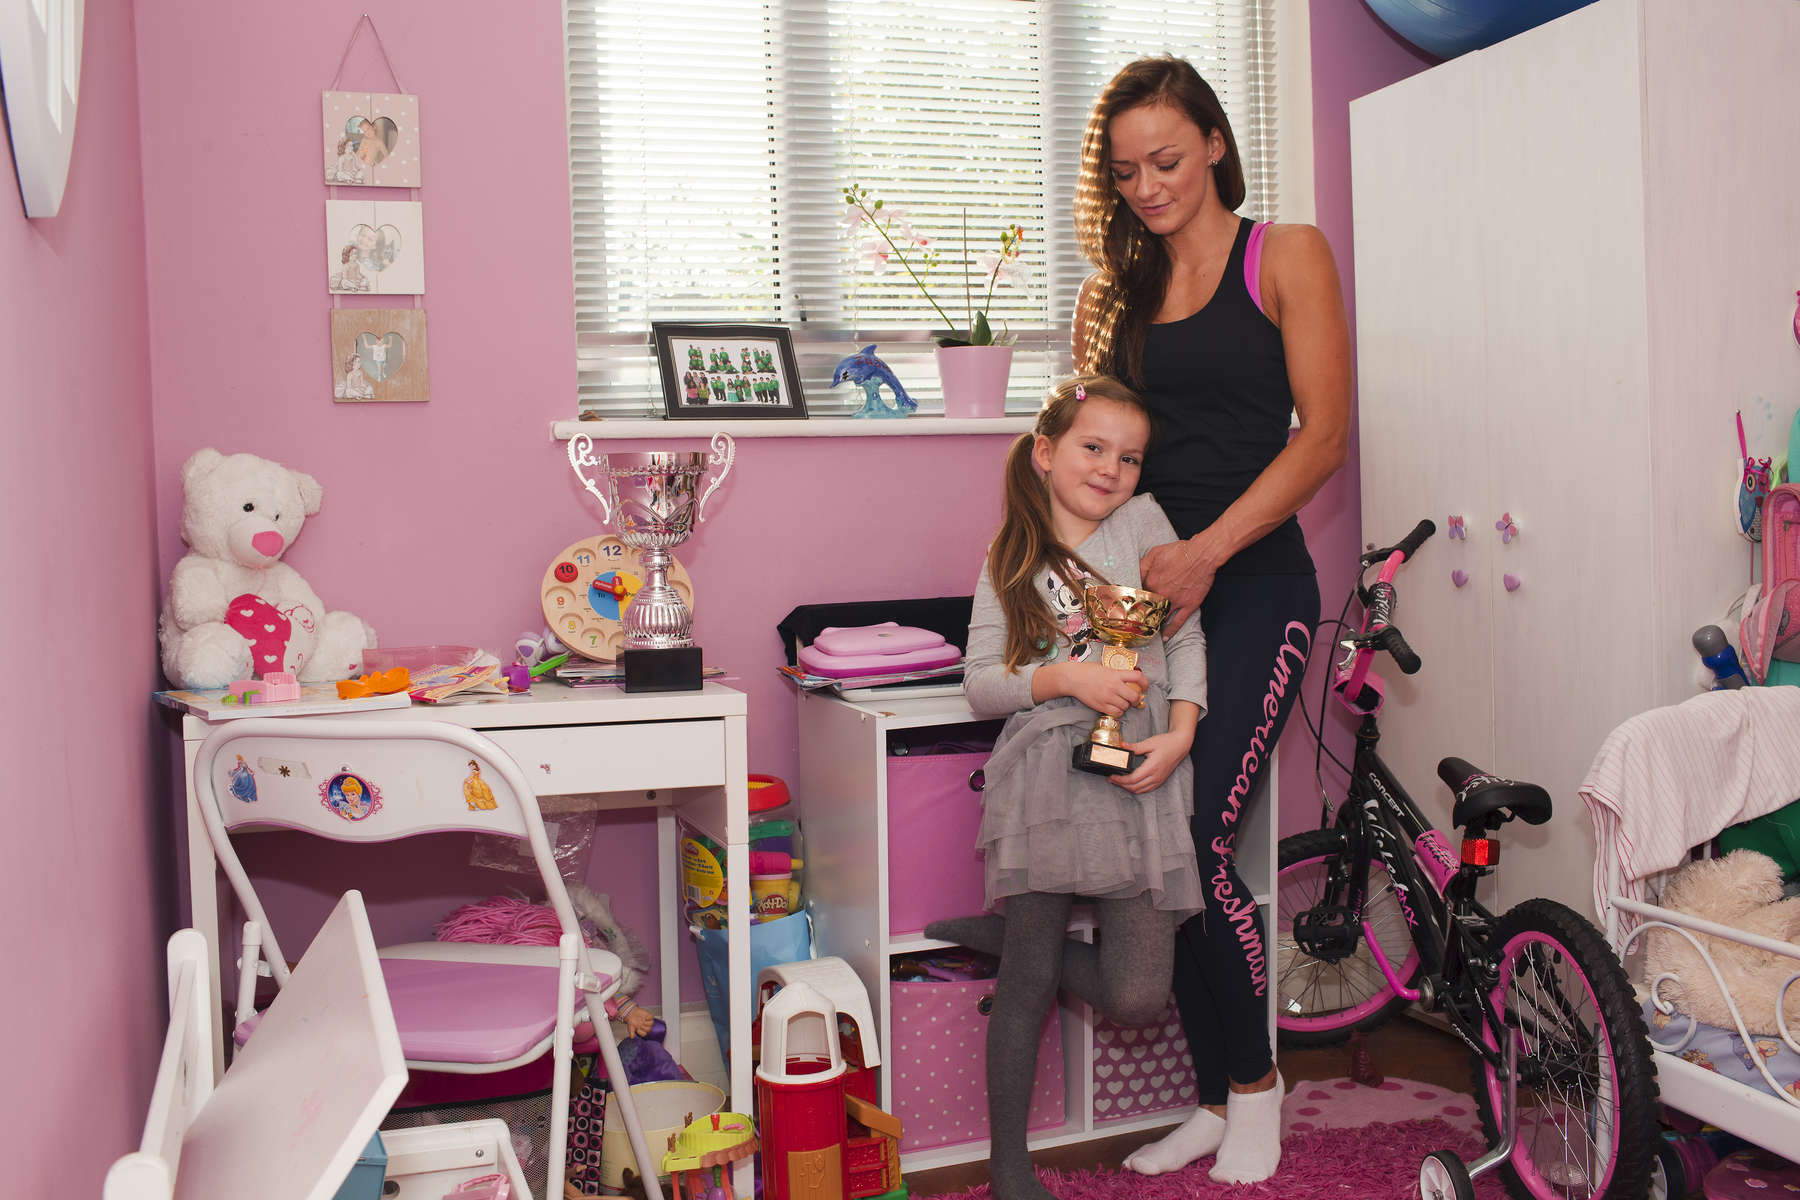 Fitness Model Aleksandra Aleksandra with her six year old daughter in their north London home. Aleksandra placed first in the 2014 Musclemania Ms. Bikini Britain Show Tall category hosted at The Shaw Theatre, London.©Peter Dench/Getty Images Reportage